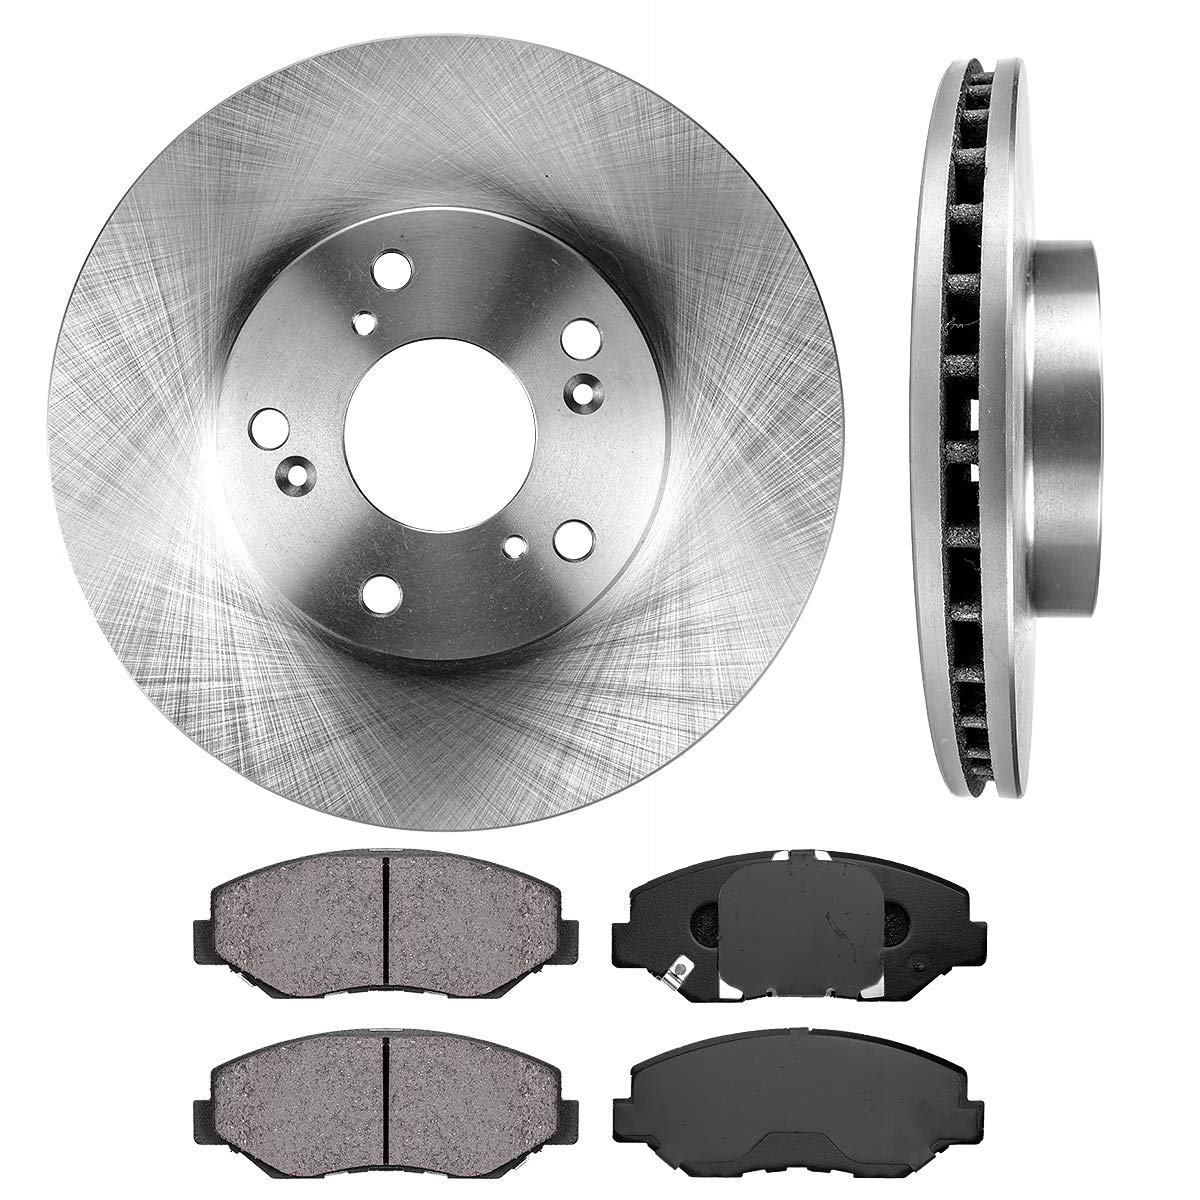 1996 acura tl brake hardware kit manua